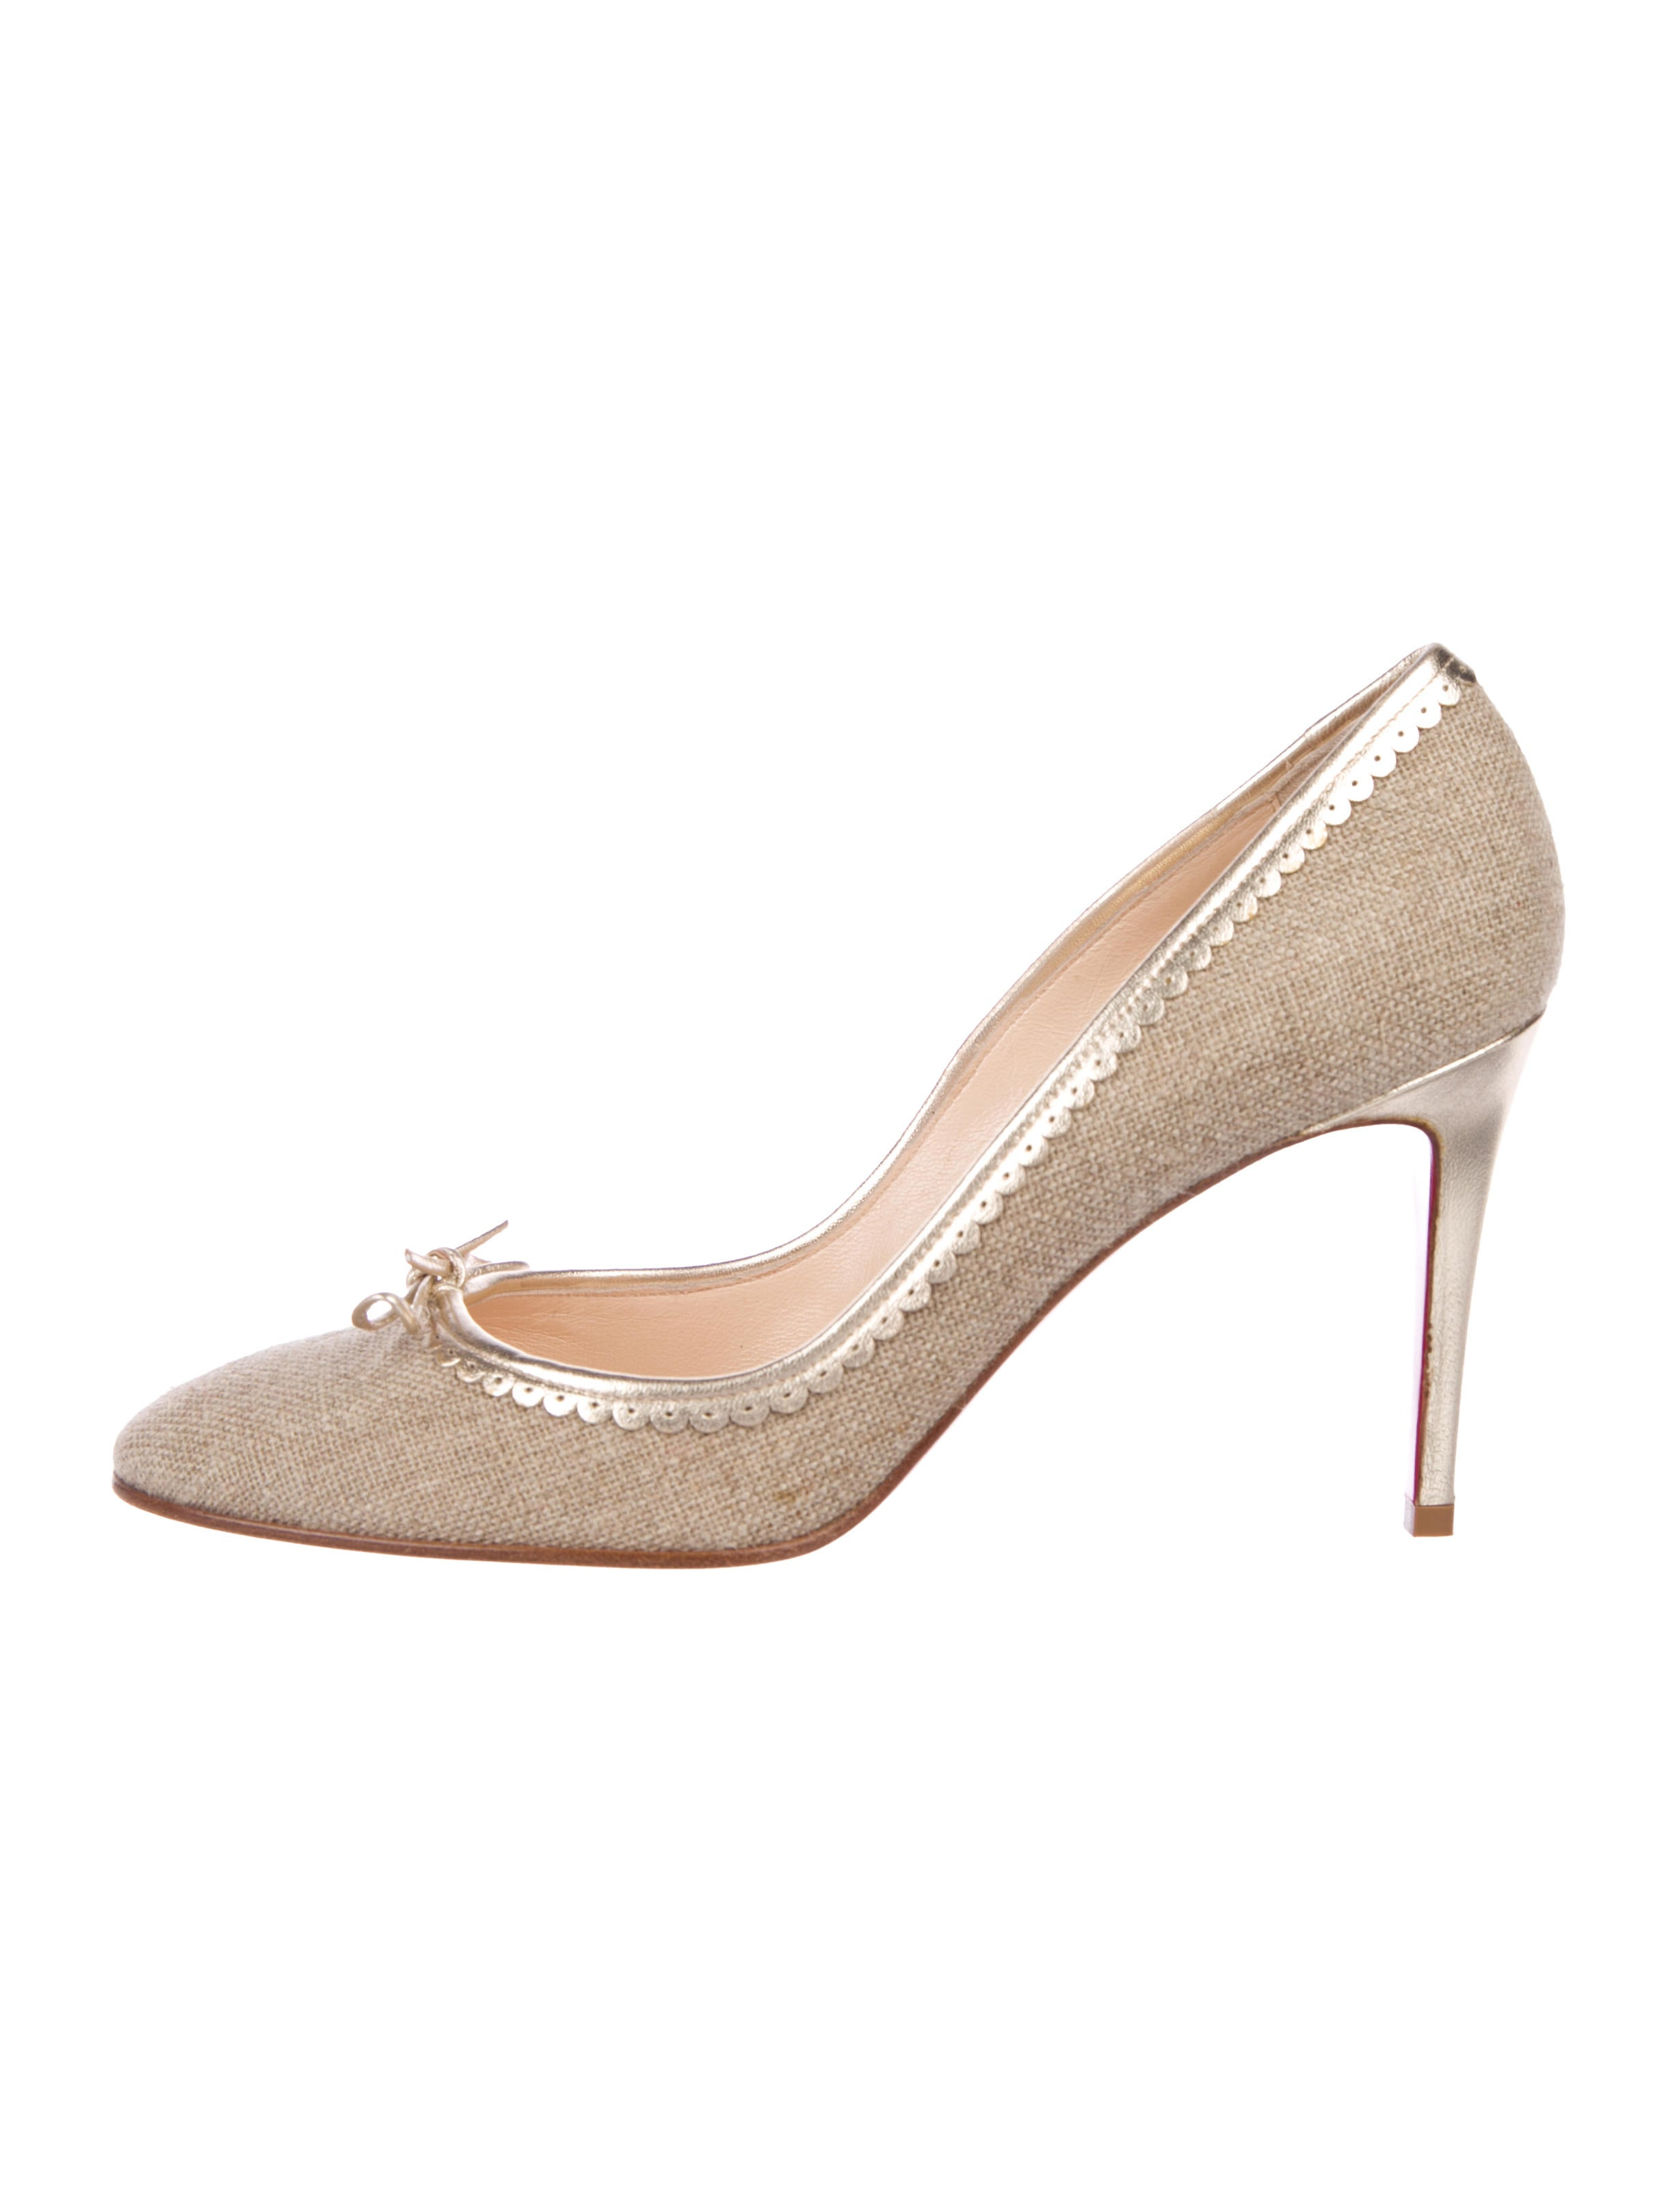 c360fdc5bfd6 Christian Louboutin Raffia Round-Toe Pumps - Shoes - CHT121958